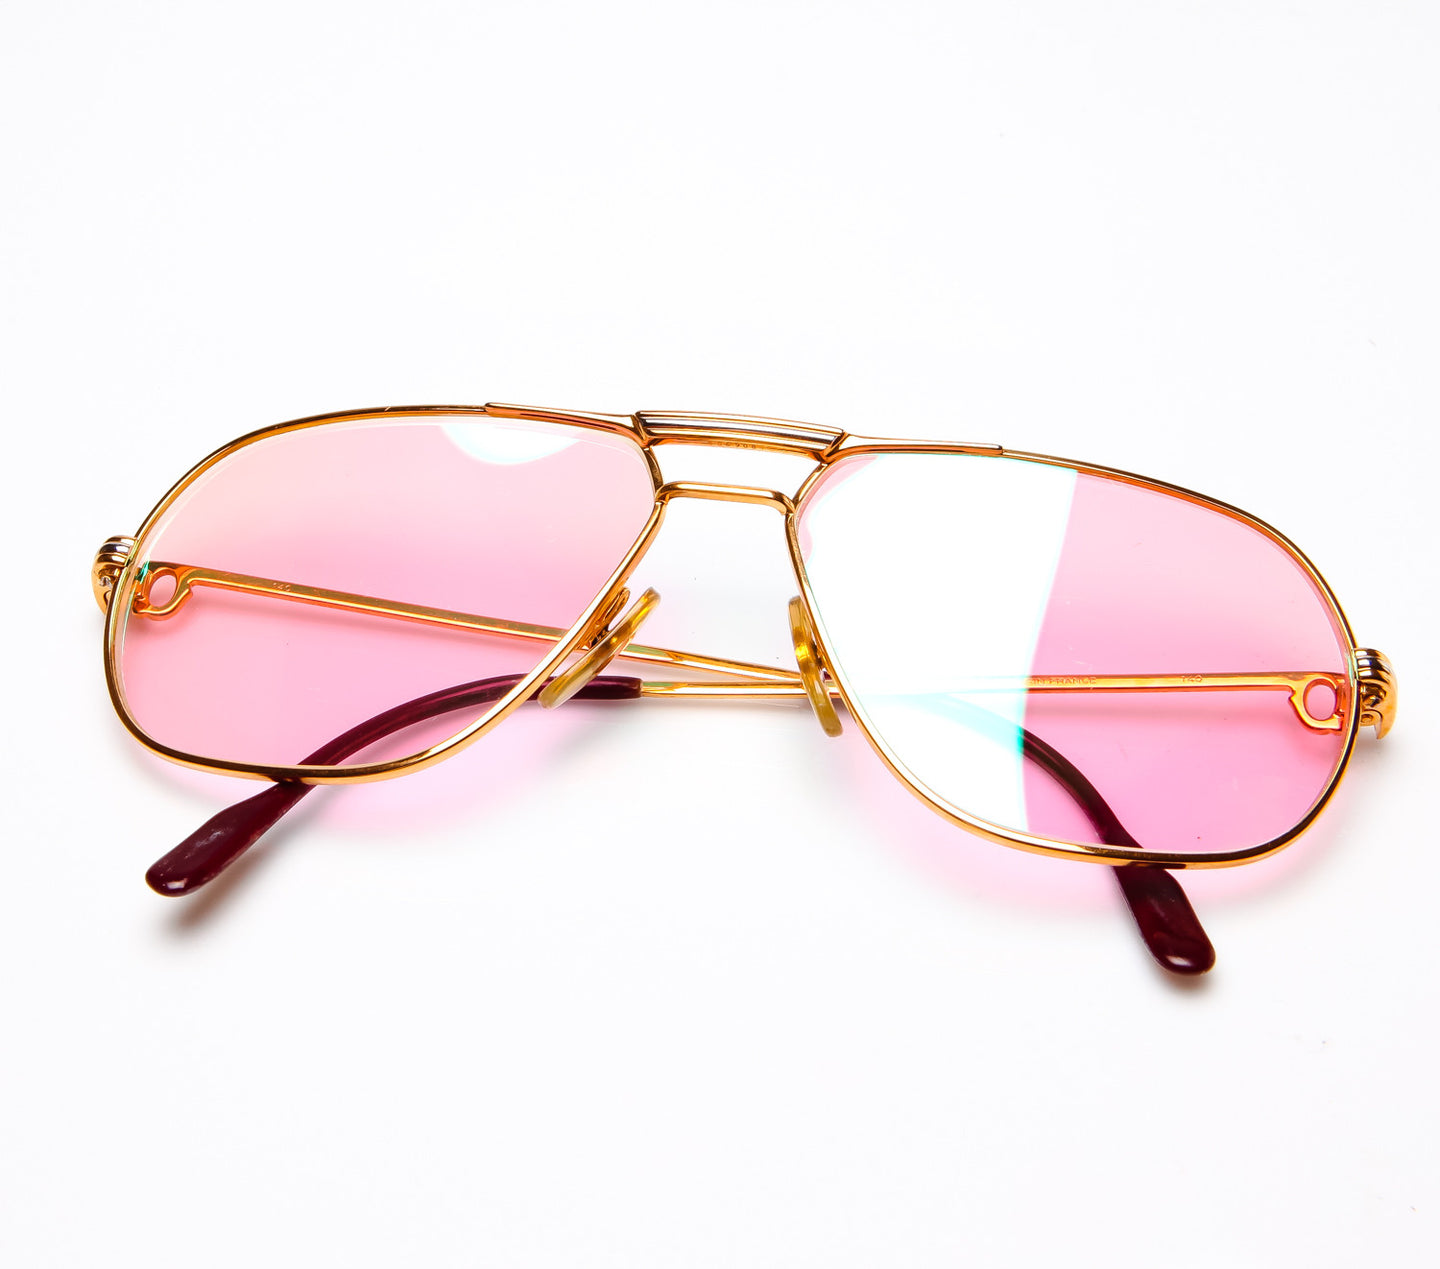 Cartier Tank Pink Flash Special Edition Thumbnail, Cartier , glasses frames, eyeglasses online, eyeglass frames, mens glasses, womens glasses, buy glasses online, designer eyeglasses, vintage sunglasses, retro sunglasses, vintage glasses, sunglass, eyeglass, glasses, lens, vintage frames company, vf